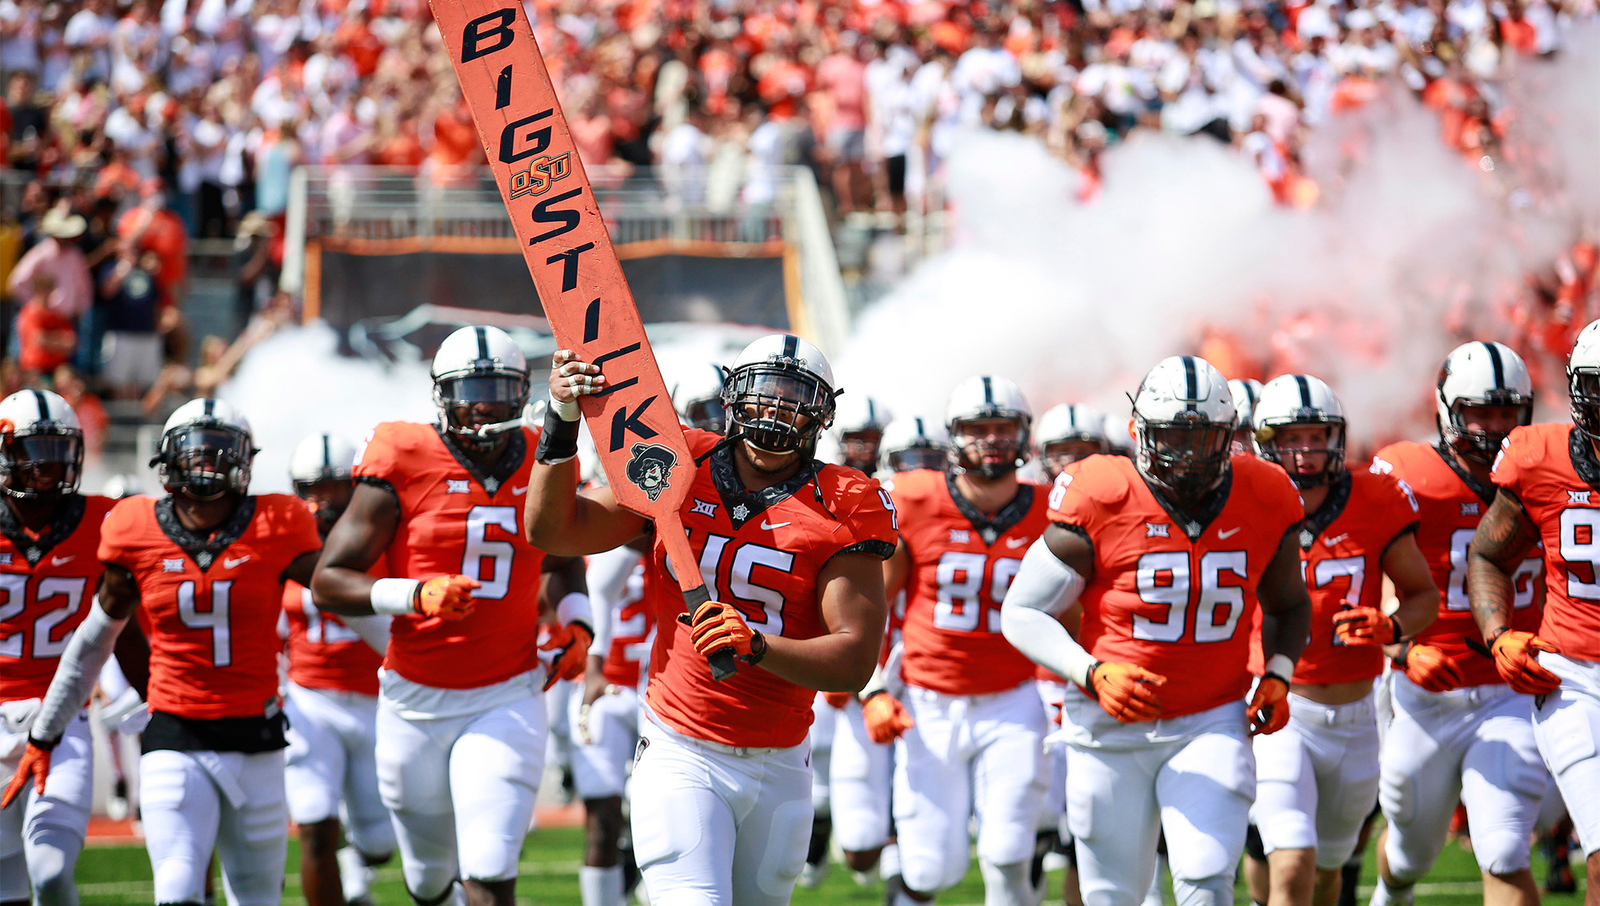 10. Oklahoma State: Every member of the Cowboys team and staff is laser-focused on the opportunity before them to move to a better university if they have a good year